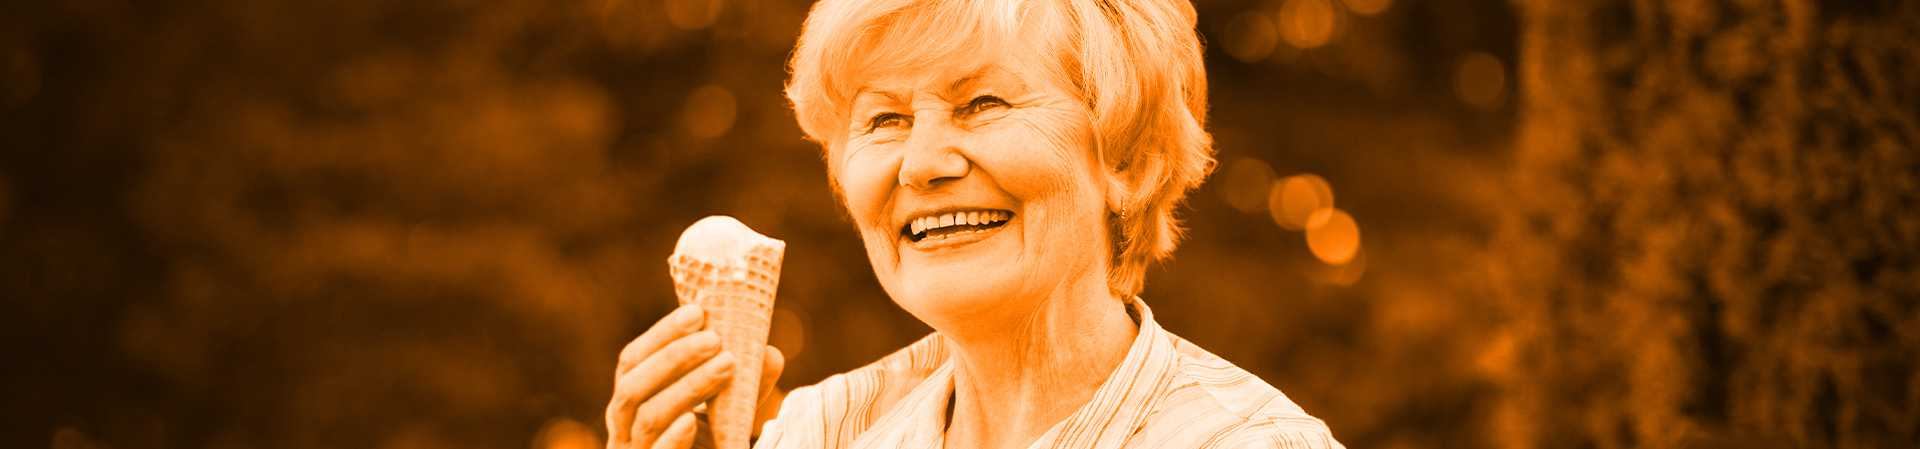 10 tips to help the elderly keep cool this summer